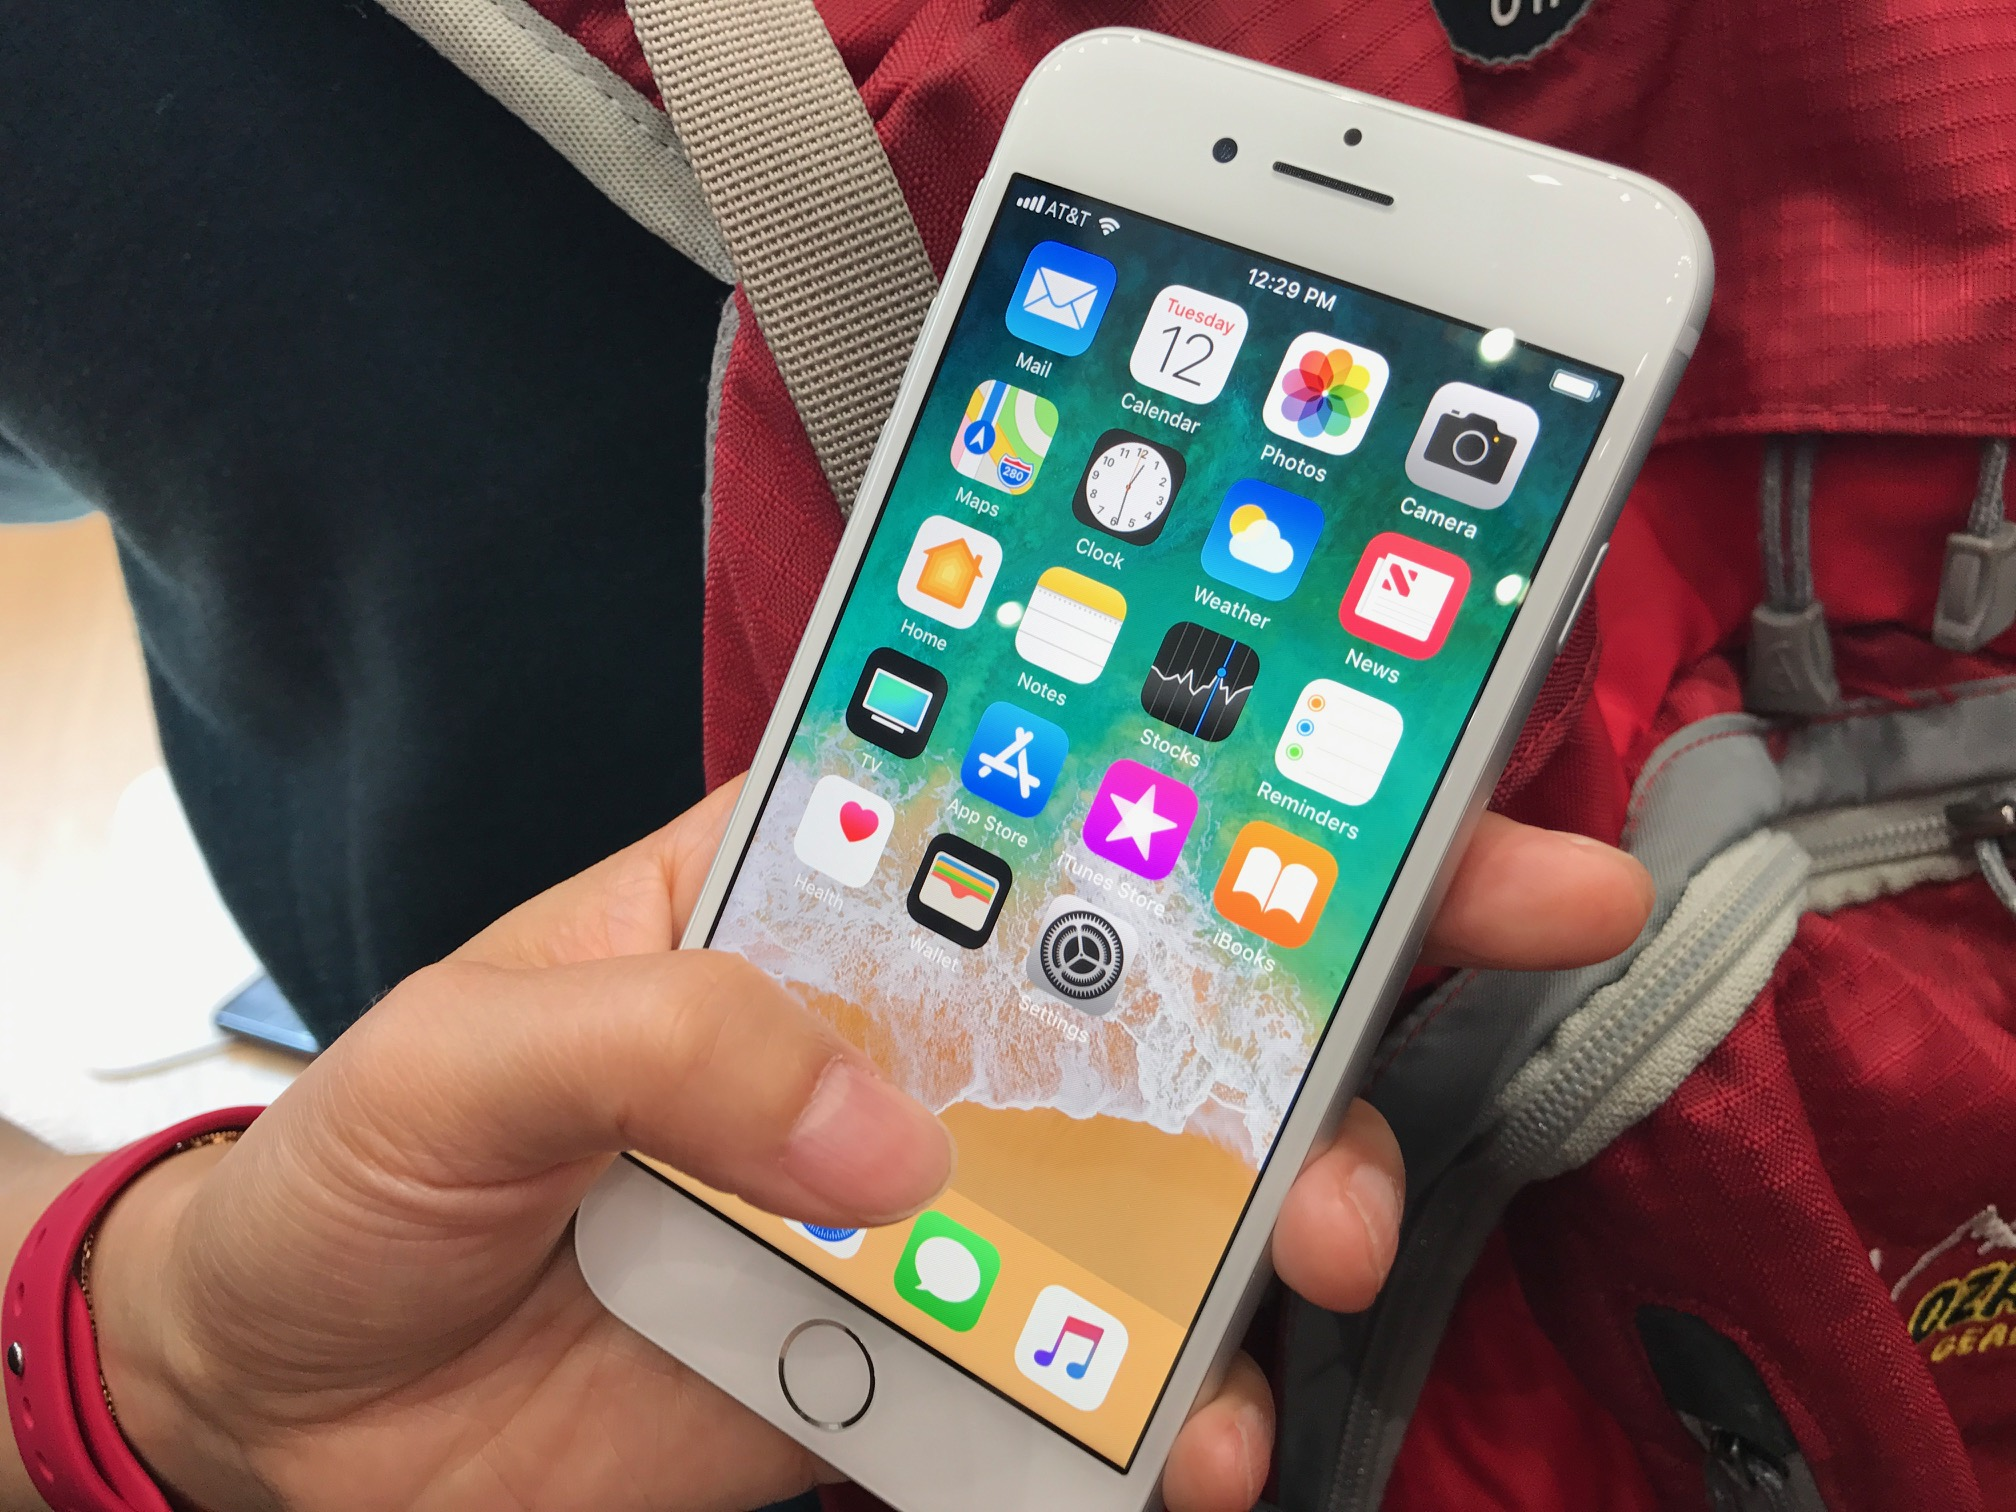 Here are 5 Ways to Track An iPhone by Phone Number